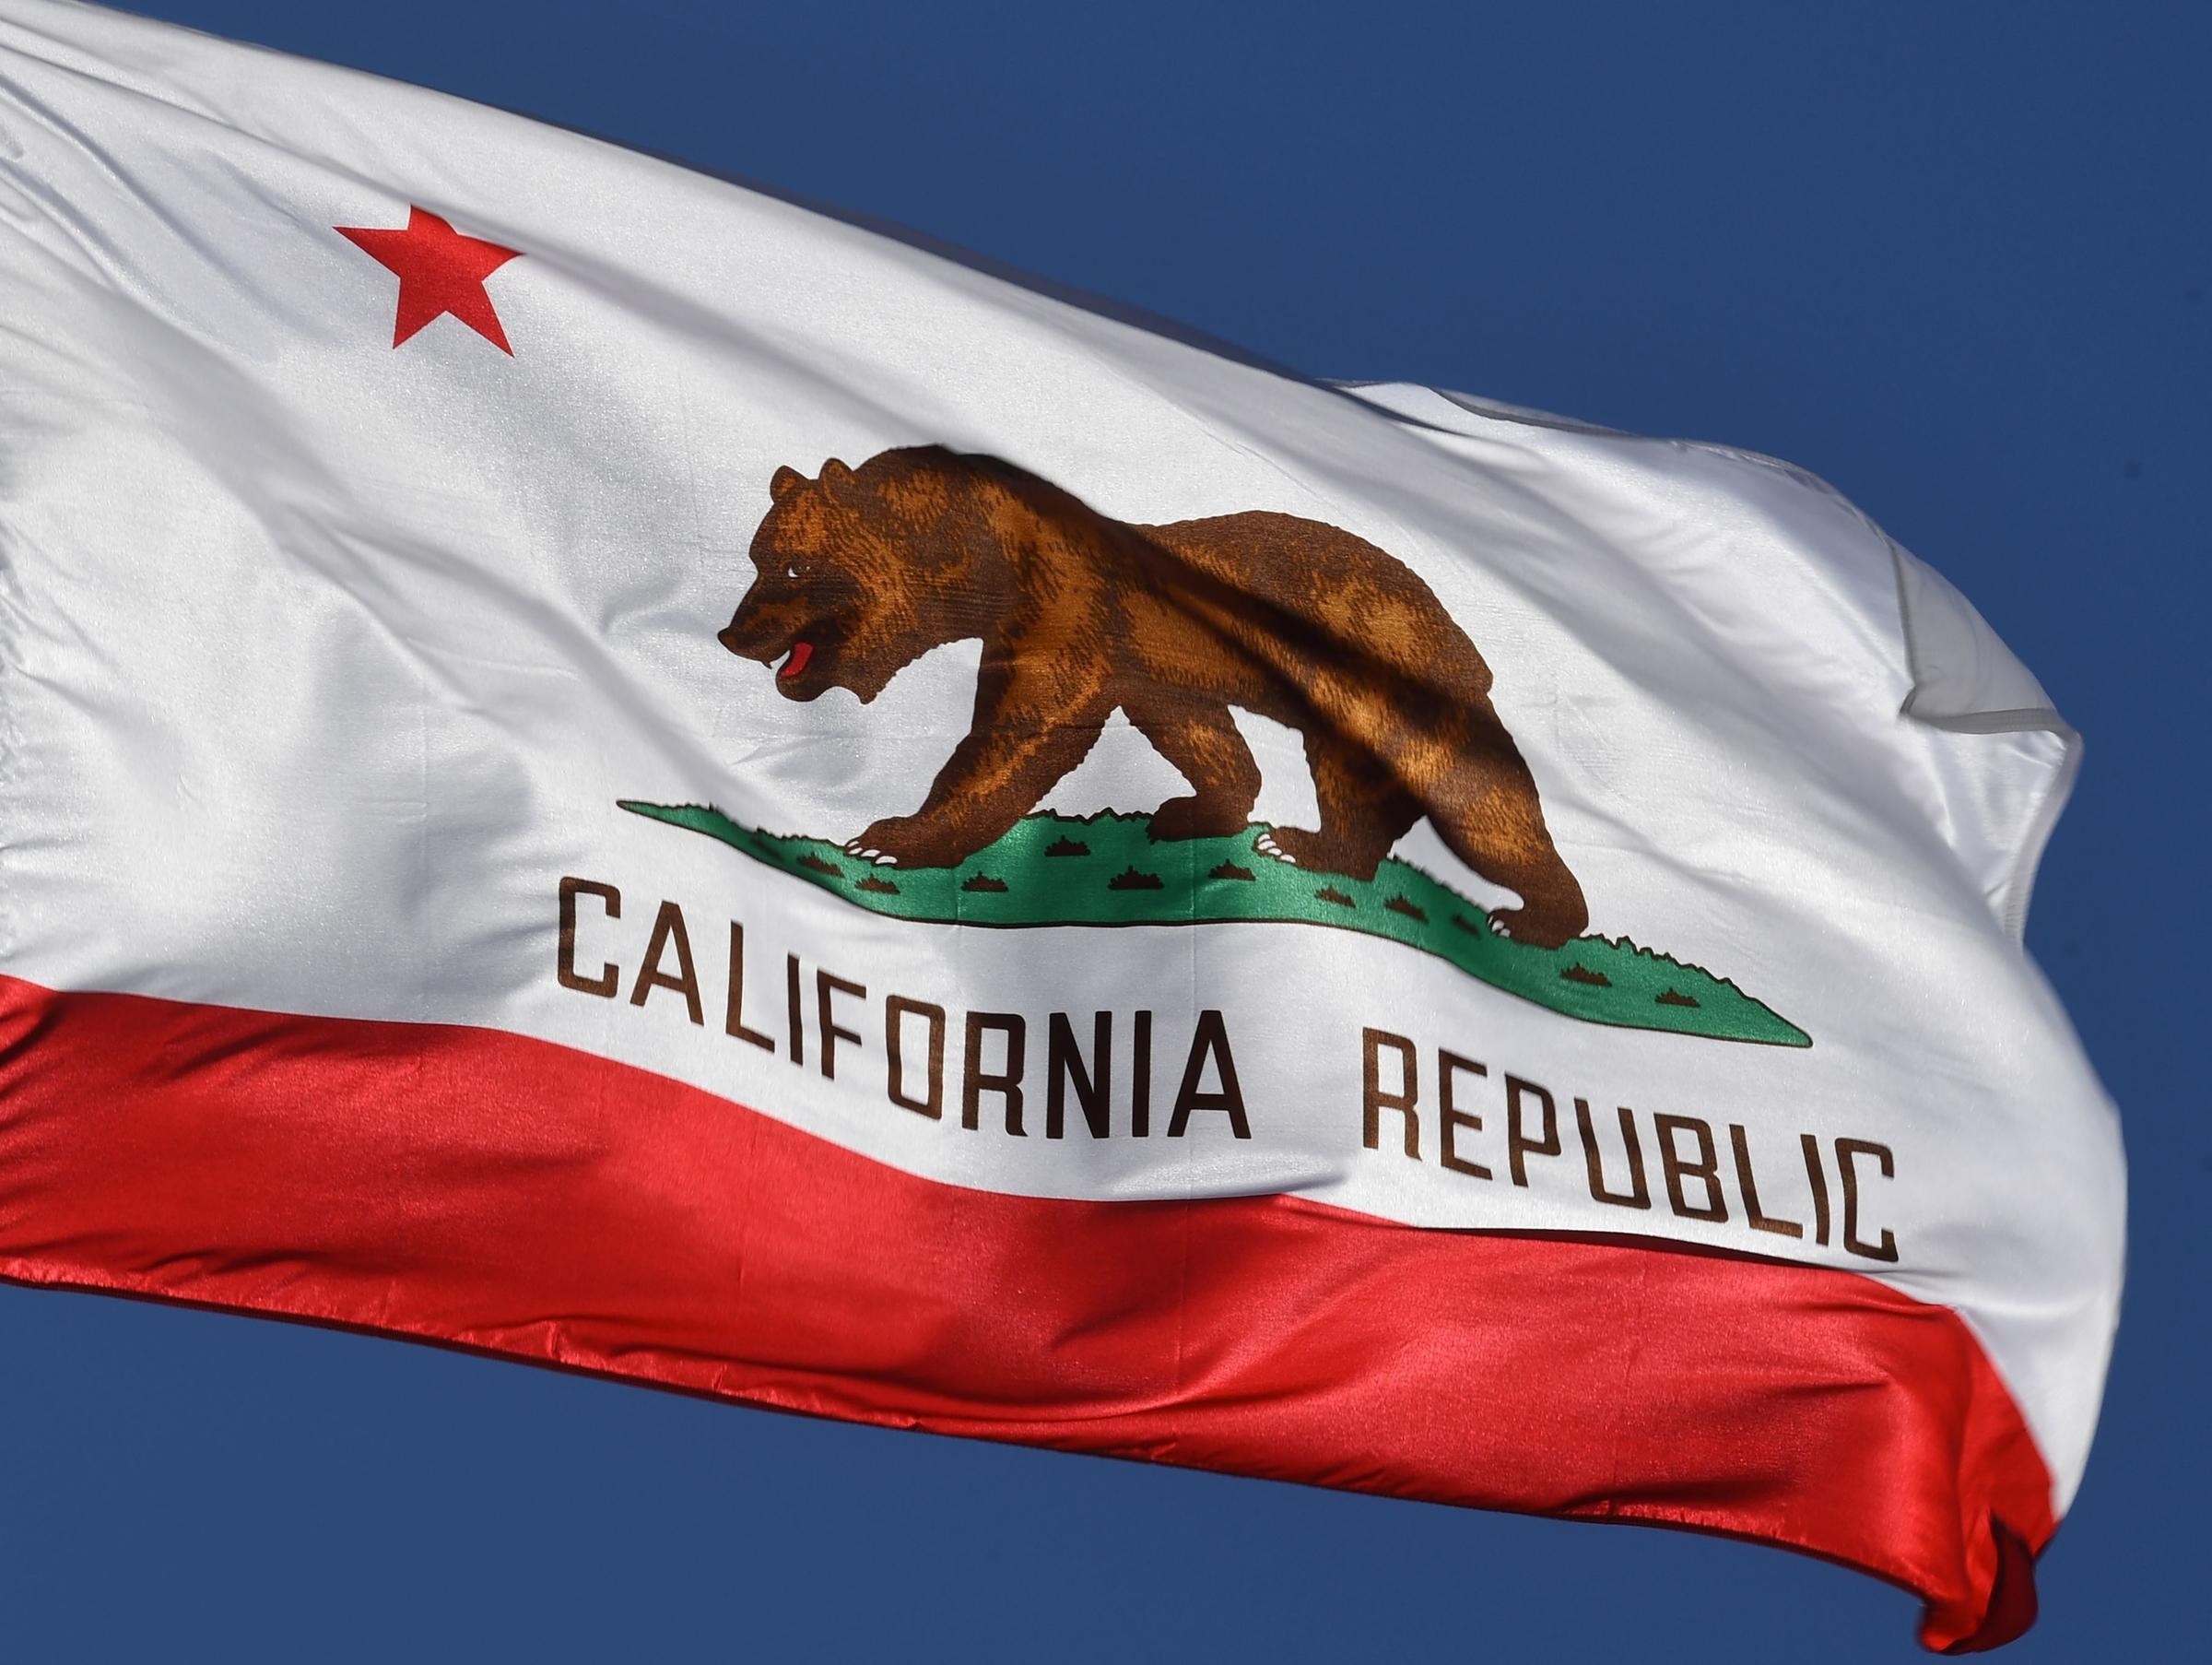 Initiative to Break California Into 3 States to Go on November Ballot